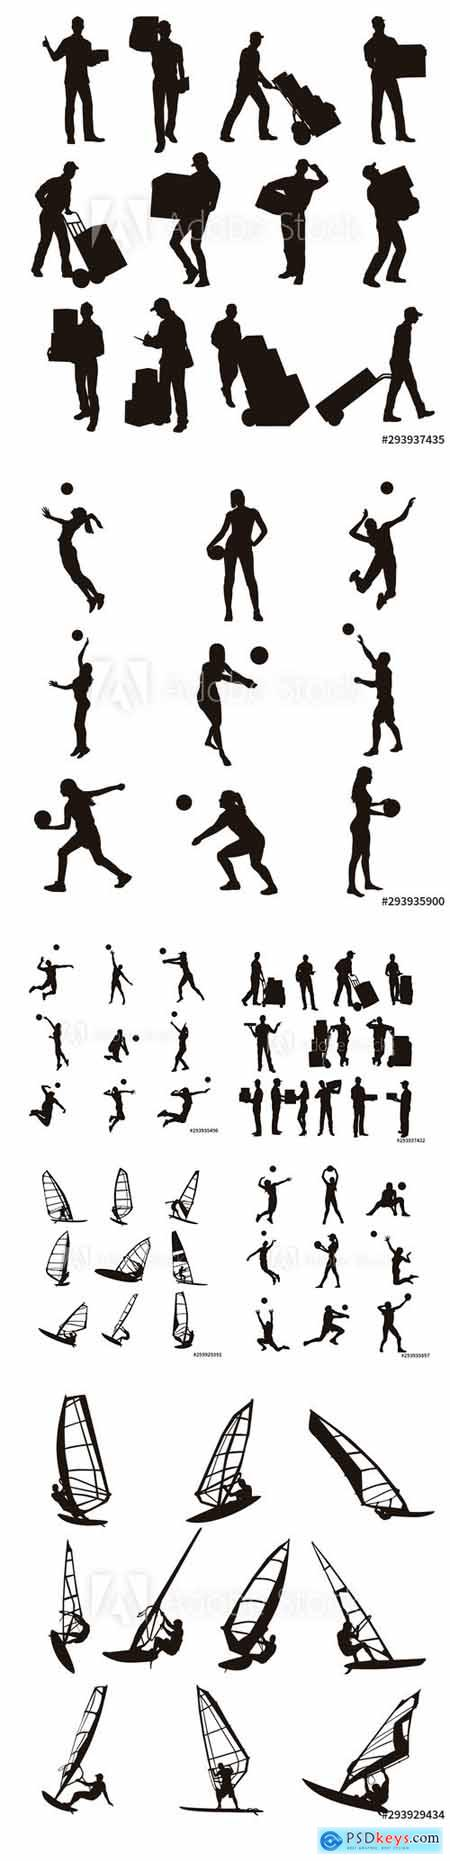 Vector Set - Delivery Man, Volleyball Player and Windsurfing Silhouettes